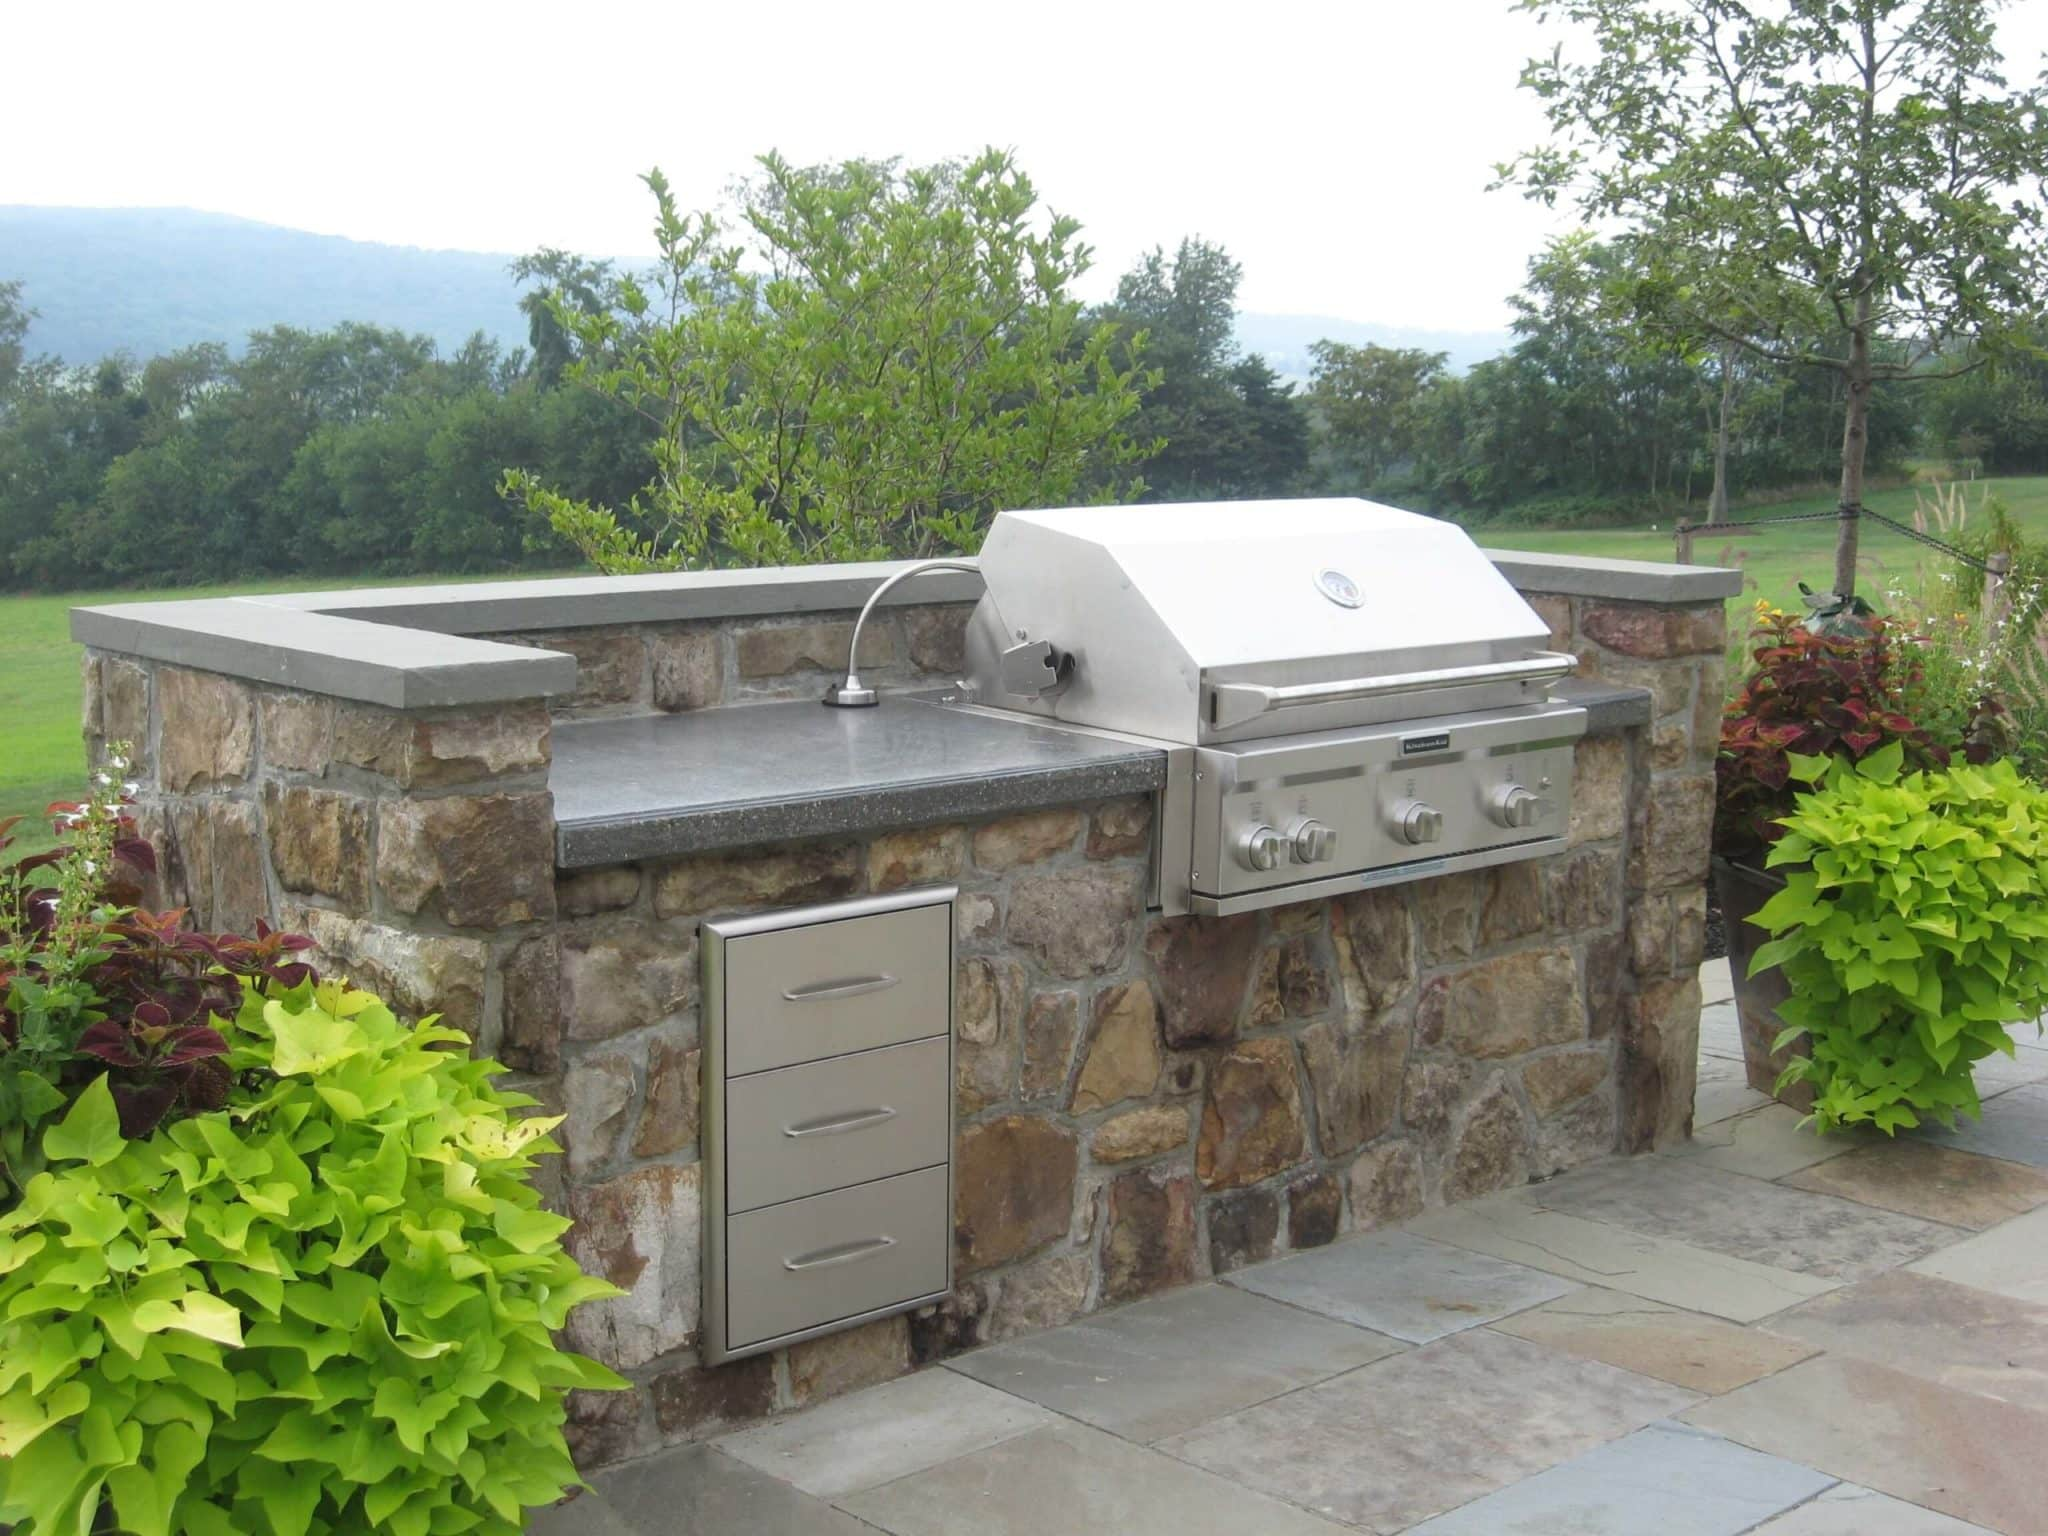 303 Custom Built Gas Grill and Concrete Countertop